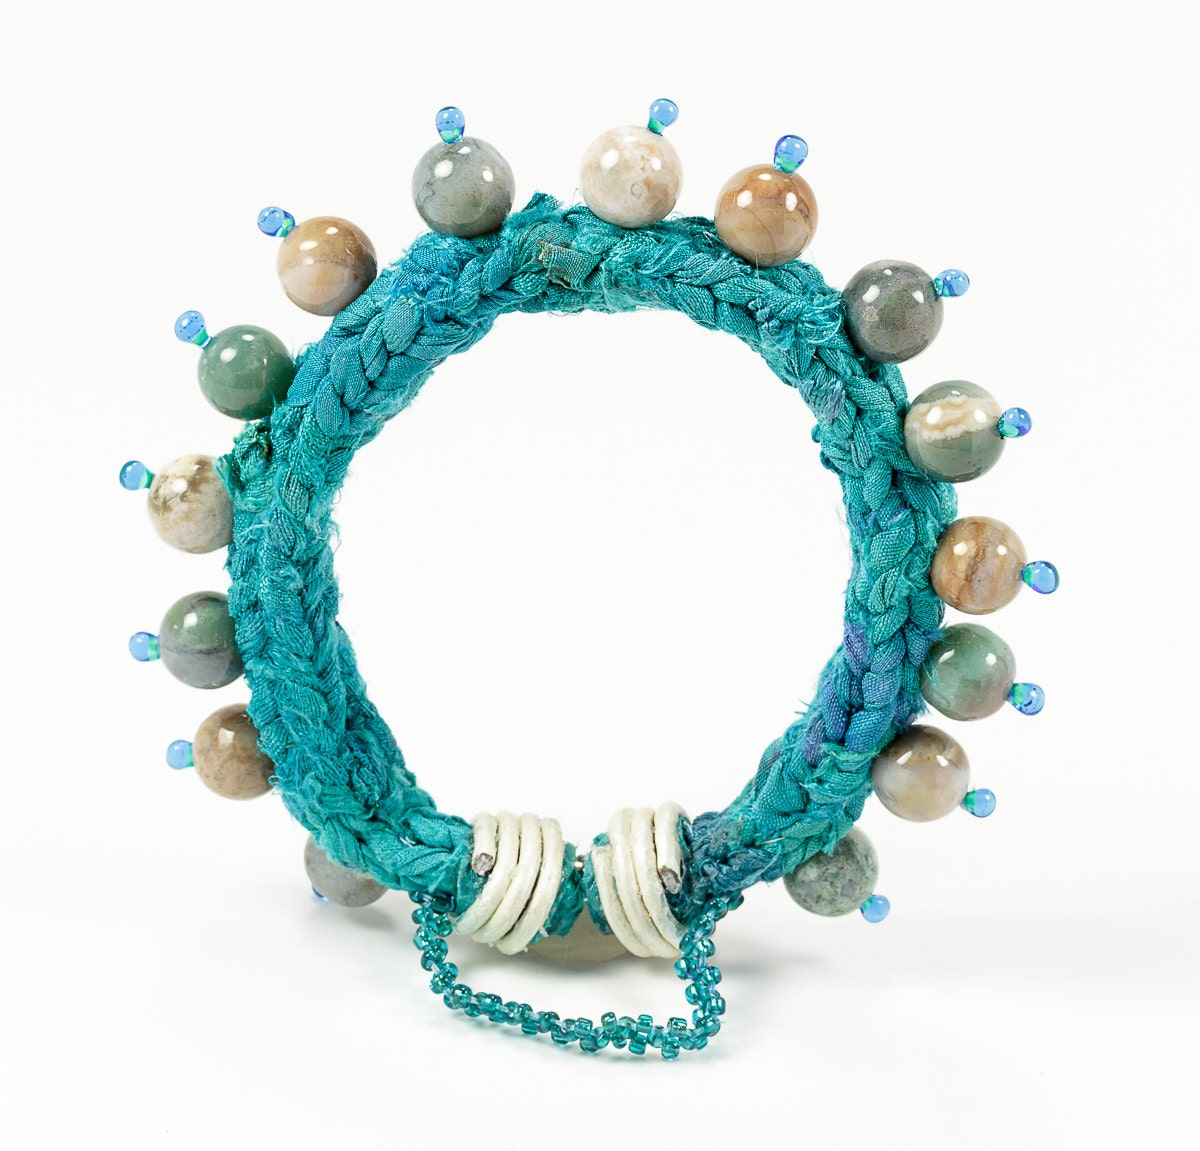 fashion jewelry ethnic bead bracelet by thestudioelle